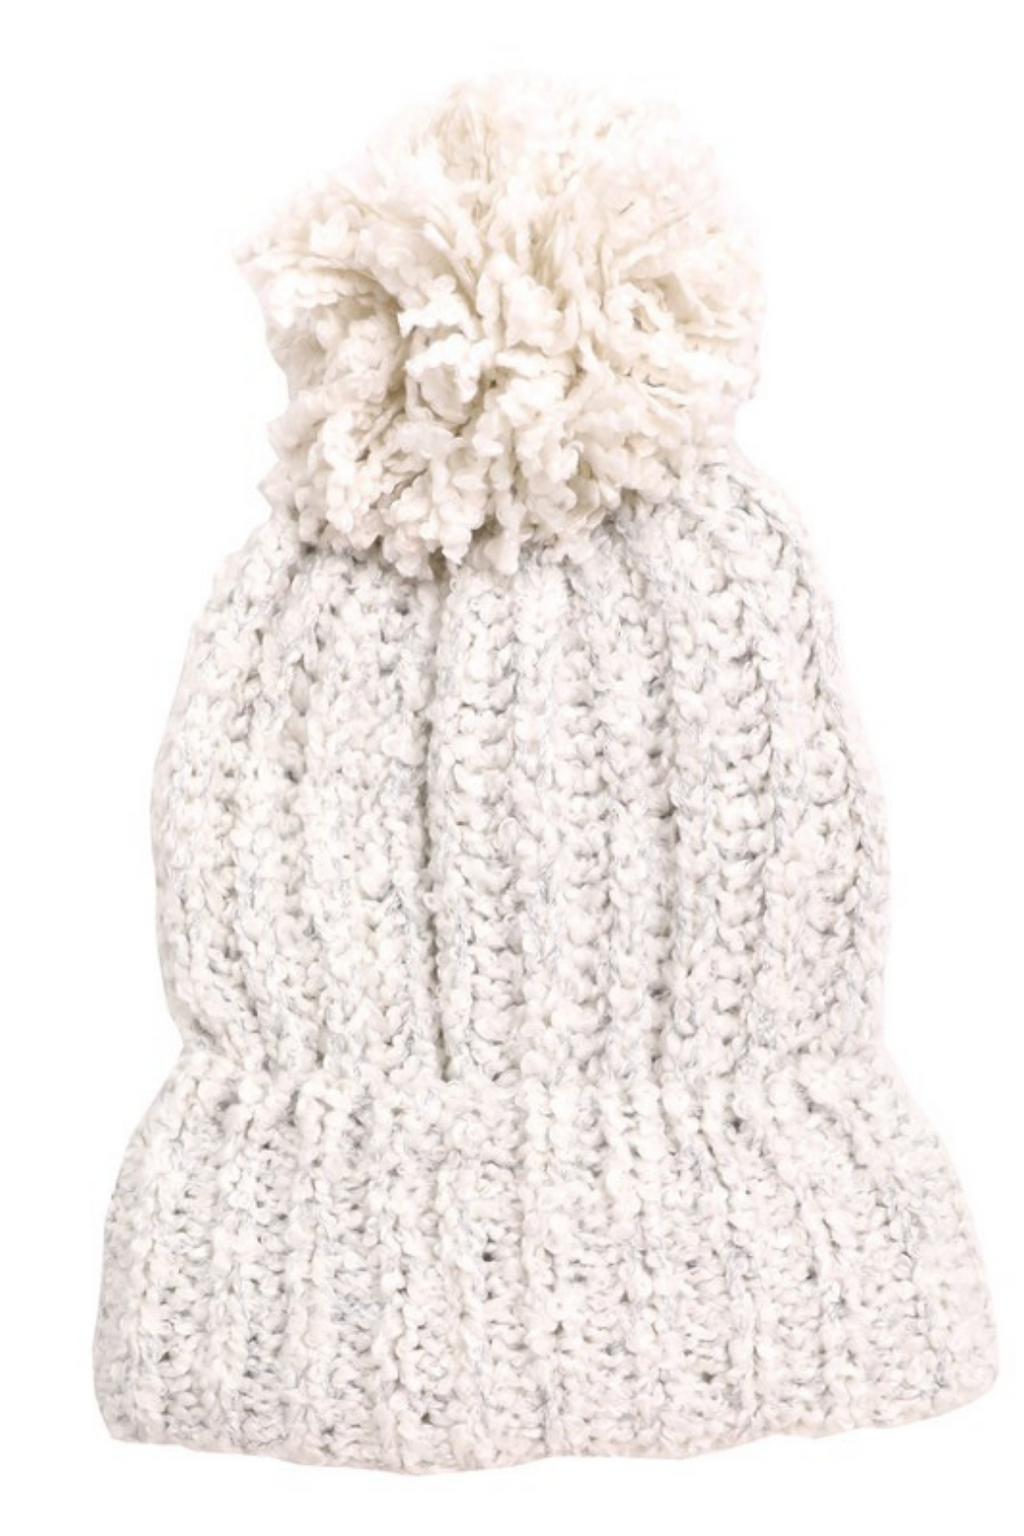 Rylee Knit Beanie - DOORBUSTER PRICE ENDS AT 4:00 PM MT